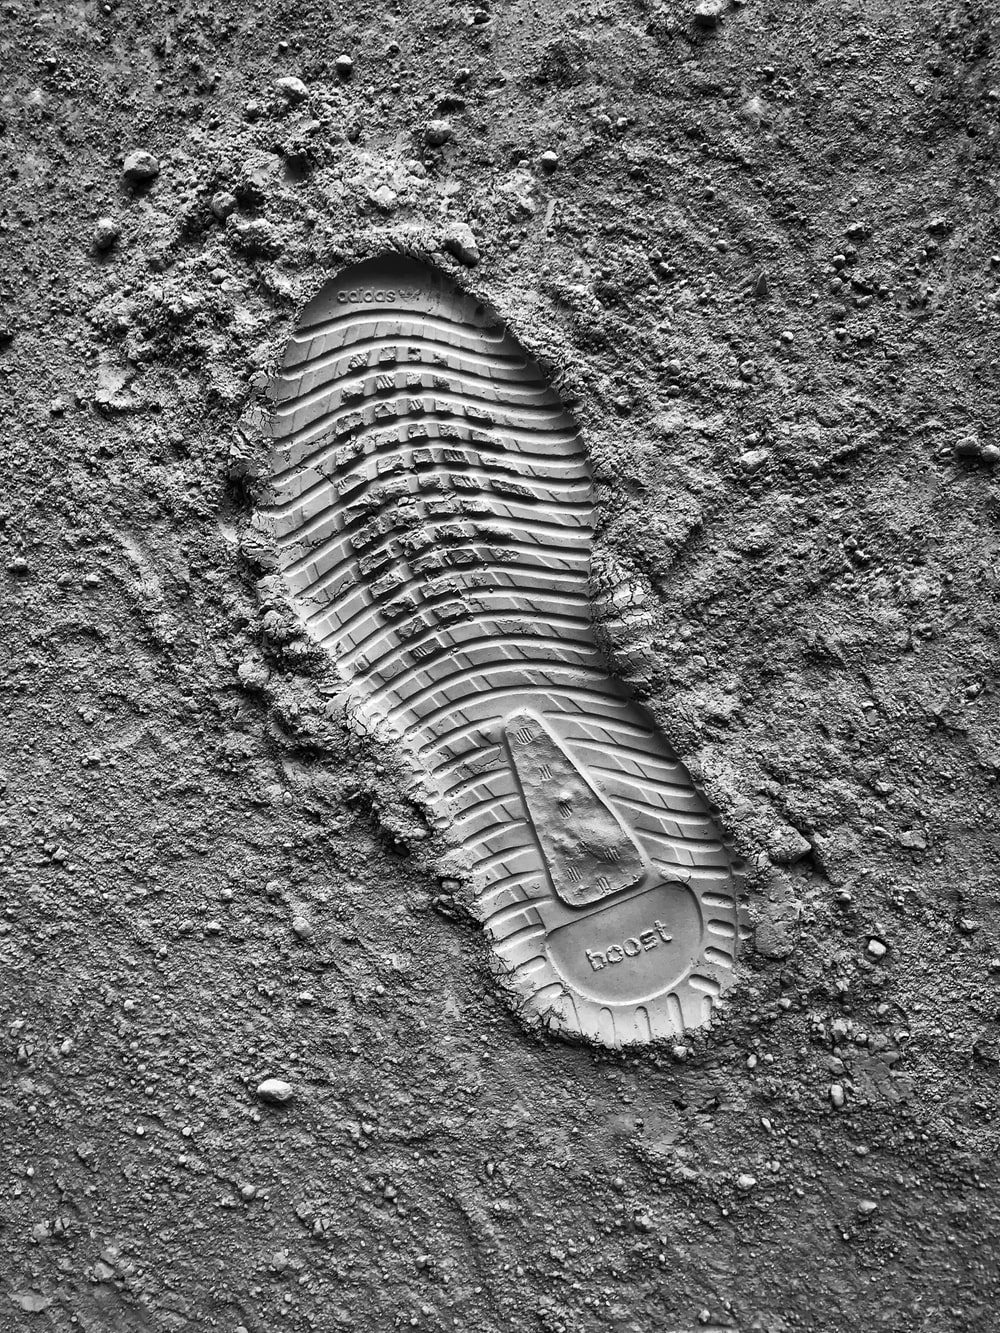 grayscale photo of sneaker sole print